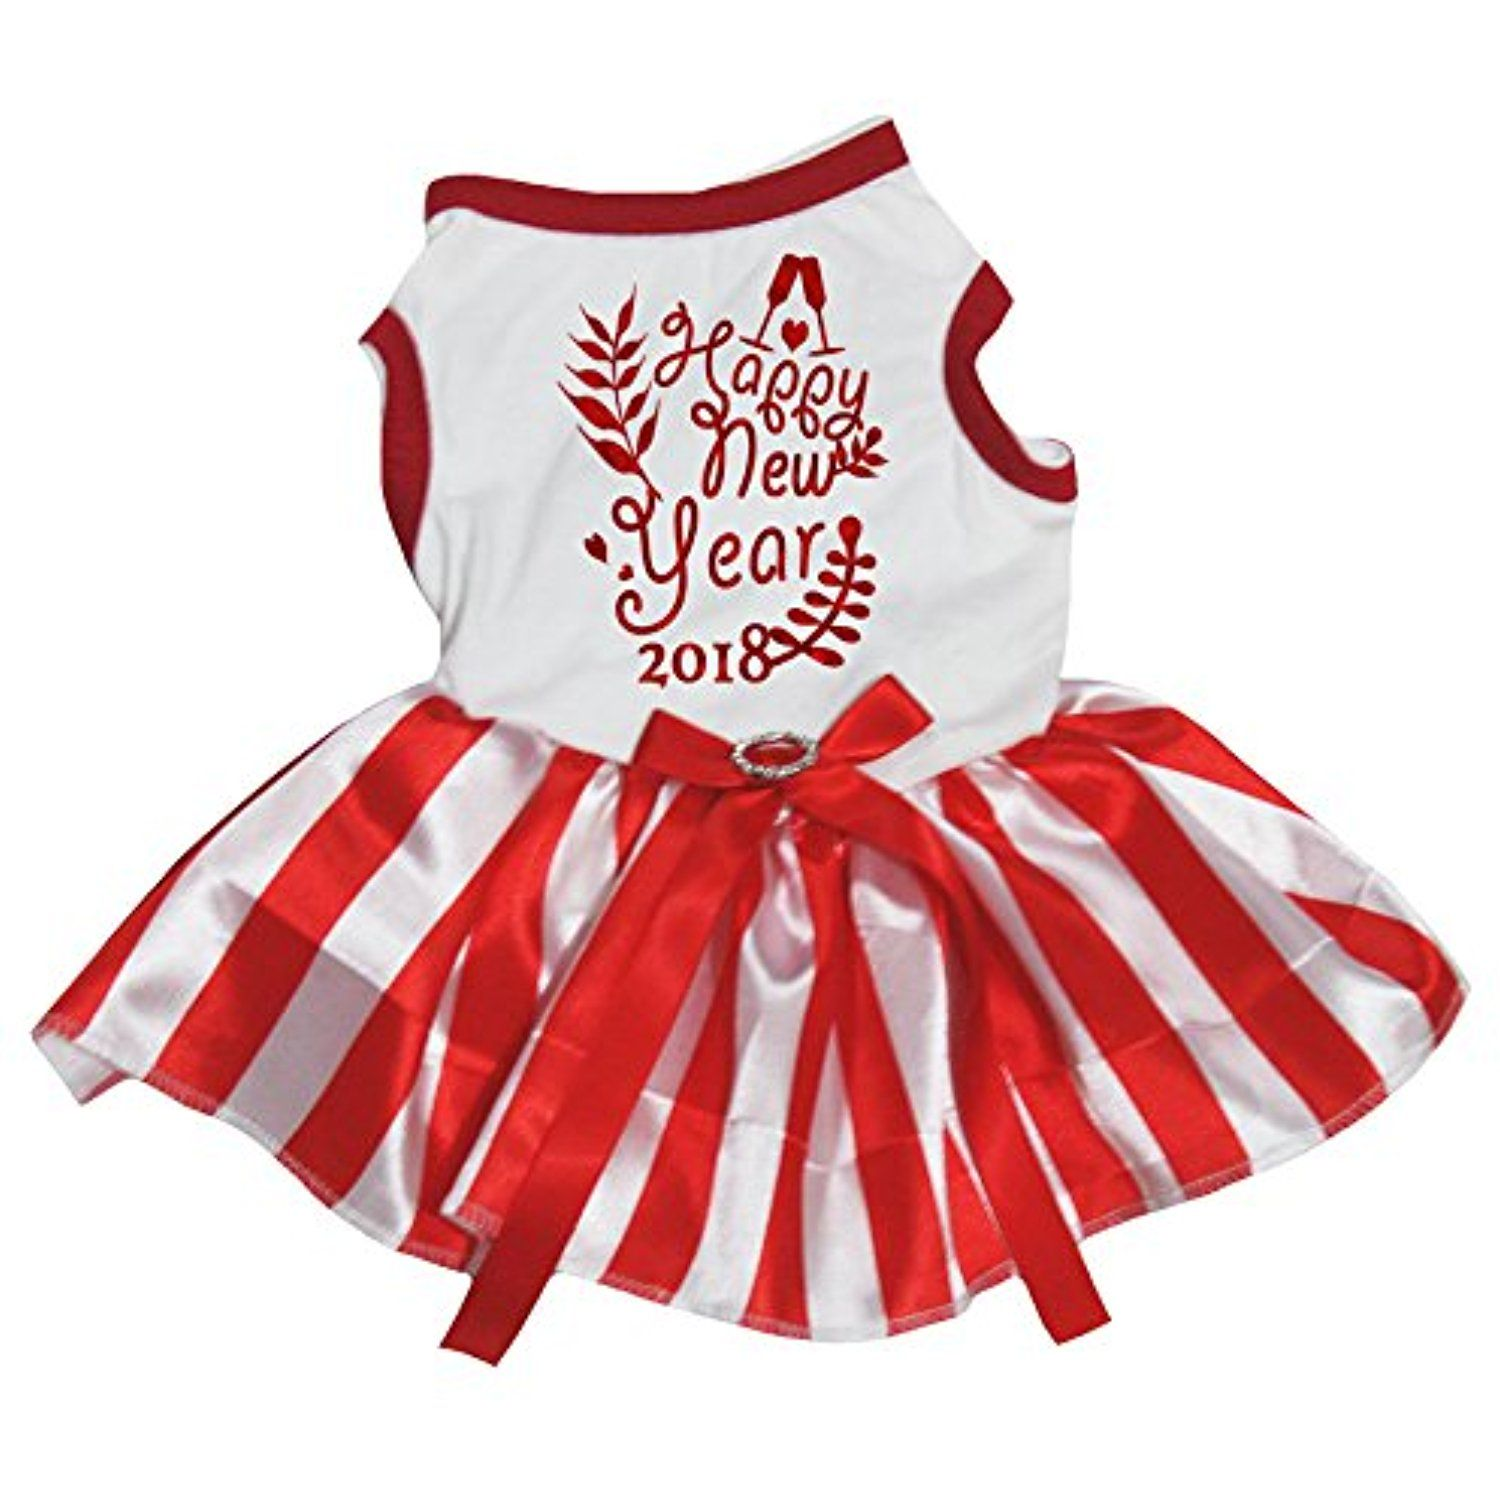 Petitebella Puppy Clothes Dog Dress New Year 2018 White Top Red Striped Tutu (Small) >>> More info could be found at the image url. (This is an affiliate link) #Dogs